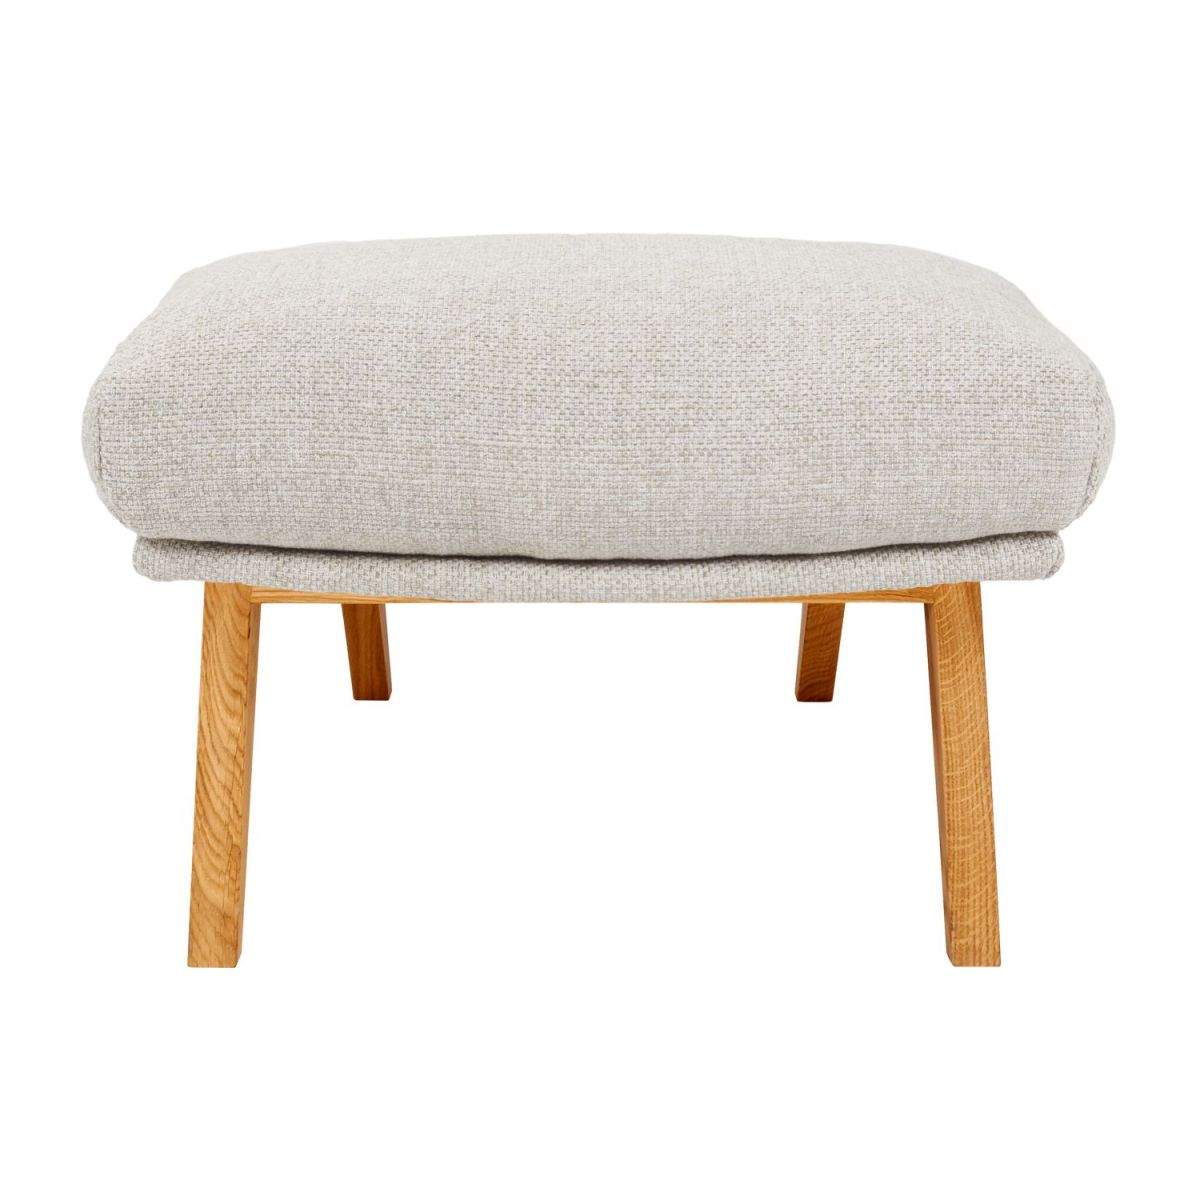 Footstool in Lecce fabric, nature with oak legs n°3